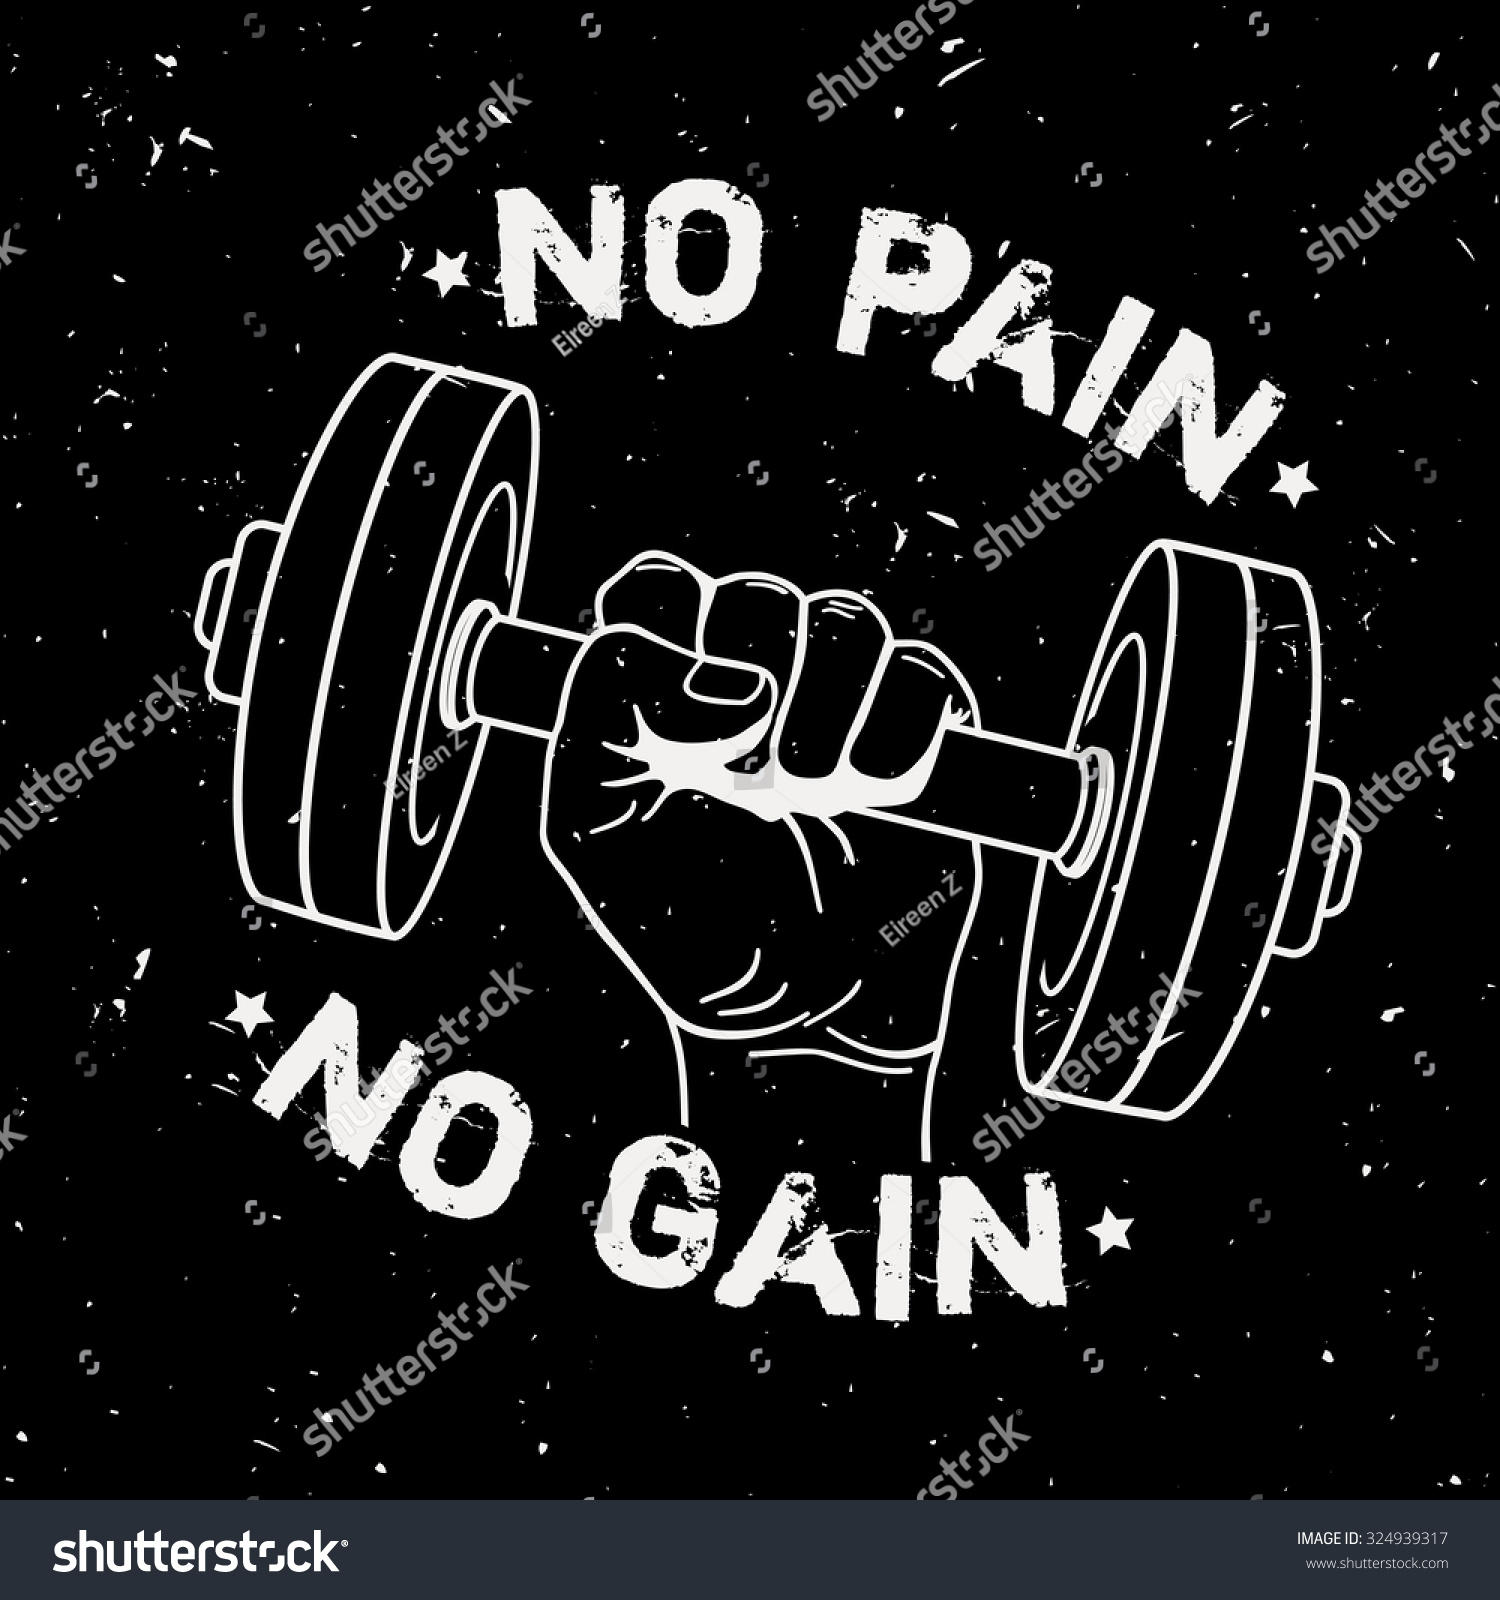 Weight Lifting Wallpaper Iphone Vector Grunge Illustration Hand Dumbbell Motivational